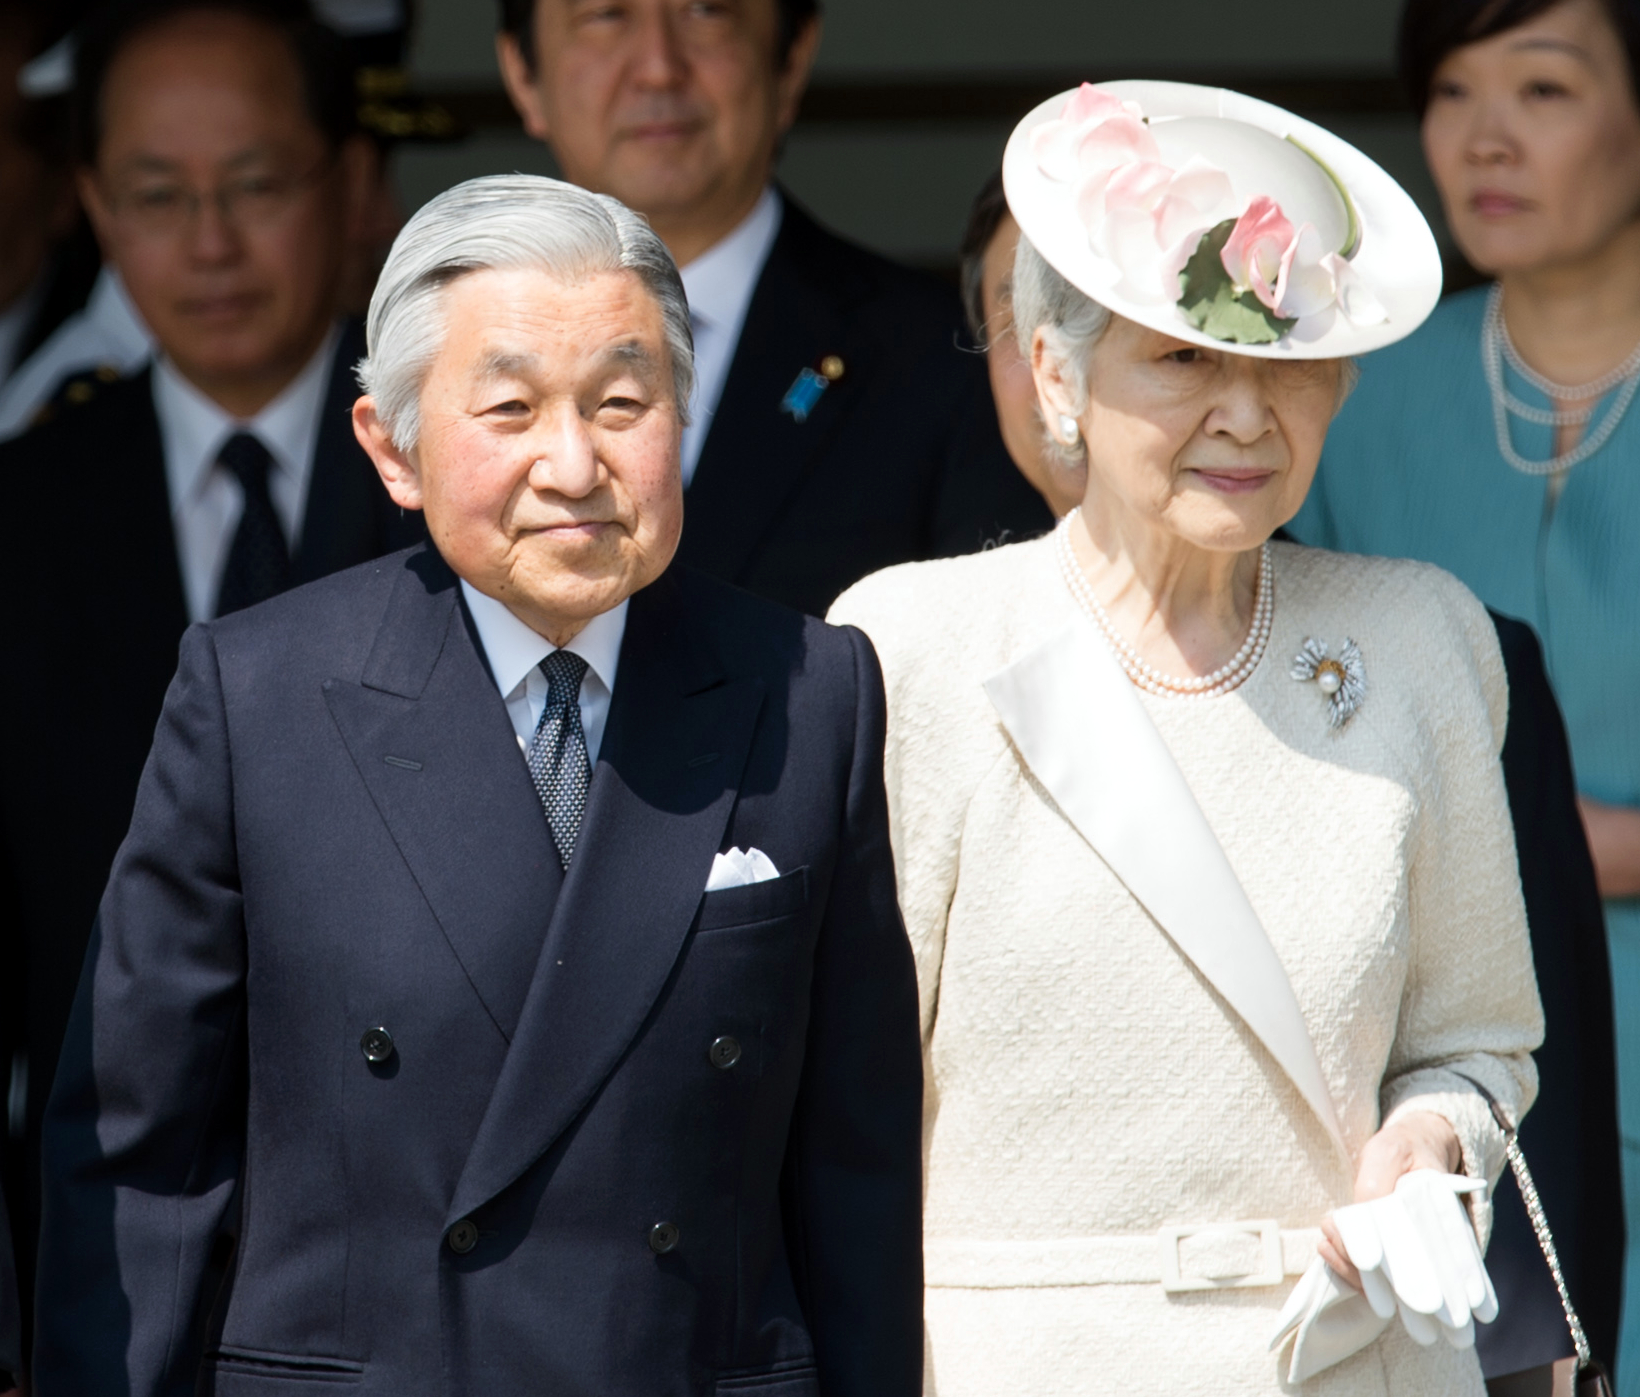 The Emperor of Japan and the Empress of Japan   The Imperial Household Agency Name einfügen 1-1 Chiyoda, Chiyoda-ku Tokyo, Japan 100-8111   Foto:  State Department photo by William Ng ,  Public Domain